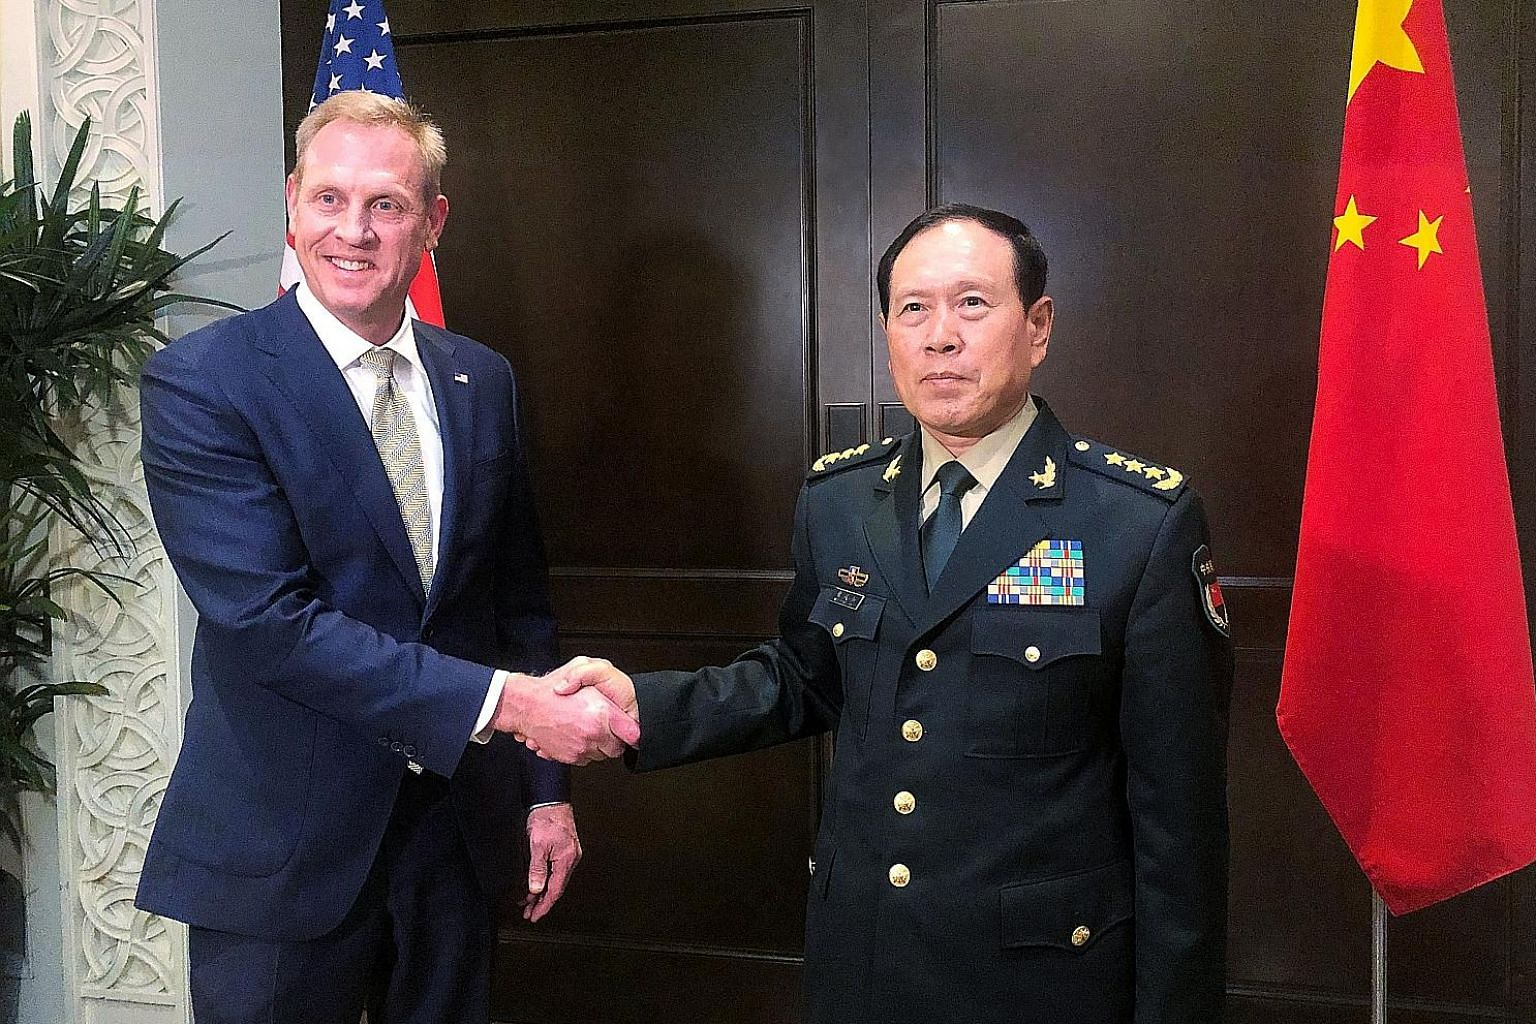 US Acting Defence Secretary Patrick Shanahan and Chinese Defence Minister Wei Fenghe meeting on the sidelines of the Shangri-La Dialogue yesterday.